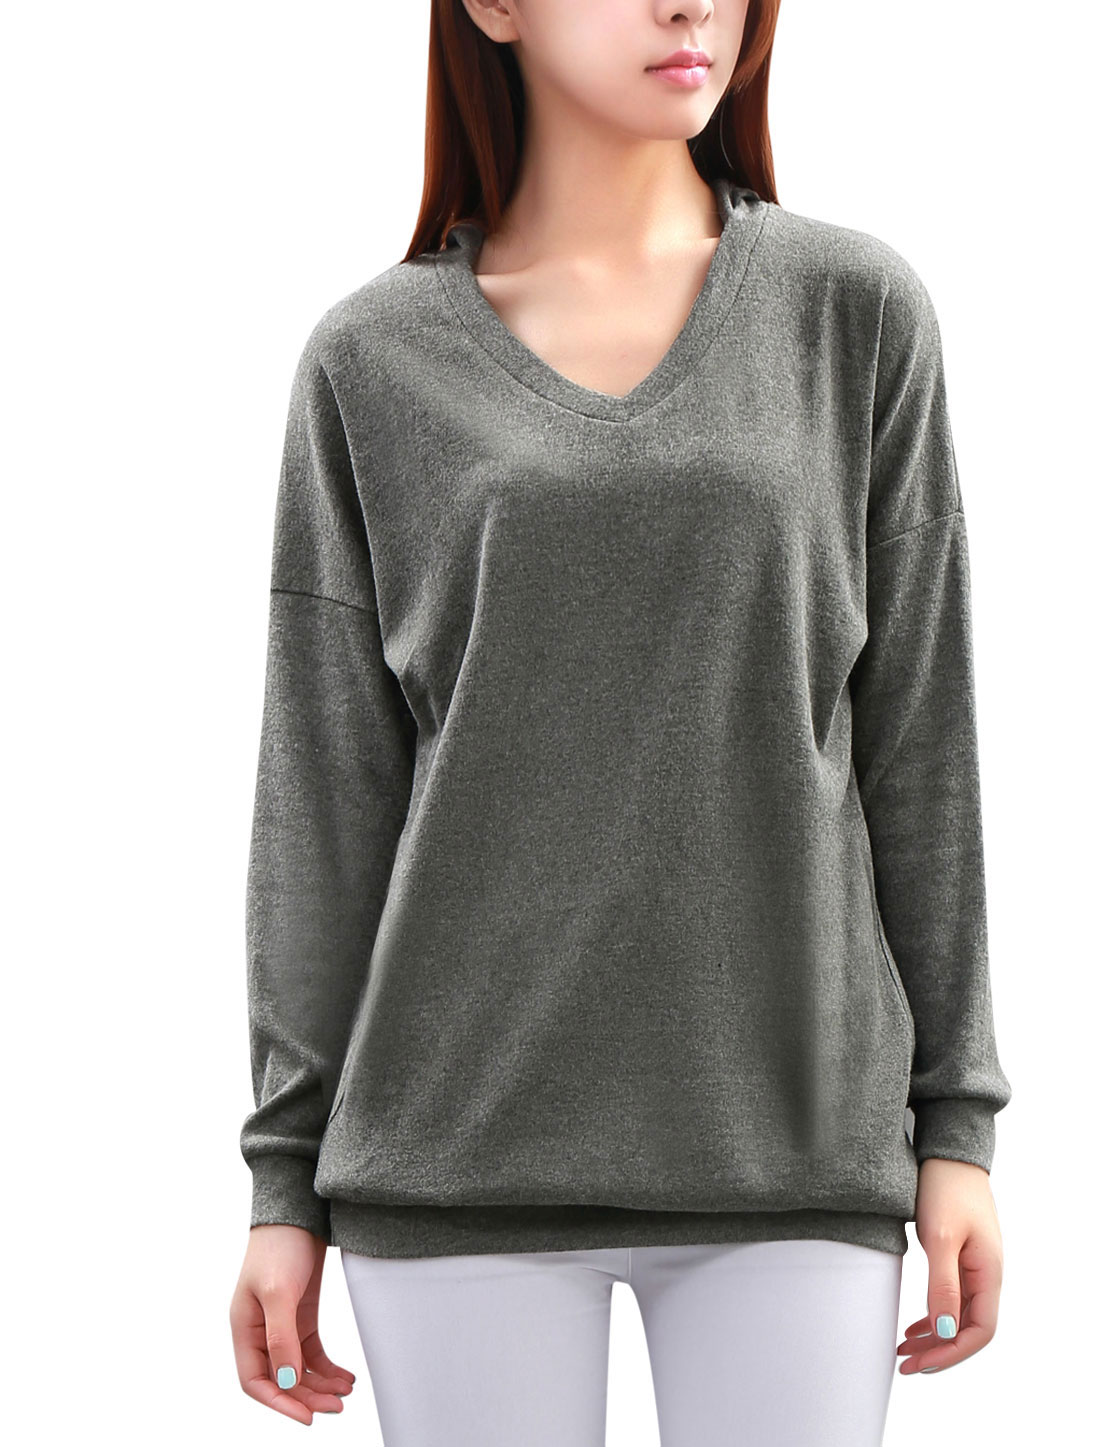 Lady Gray Long Dolman Sleeve V Neckline Design Tunic Hoodie S